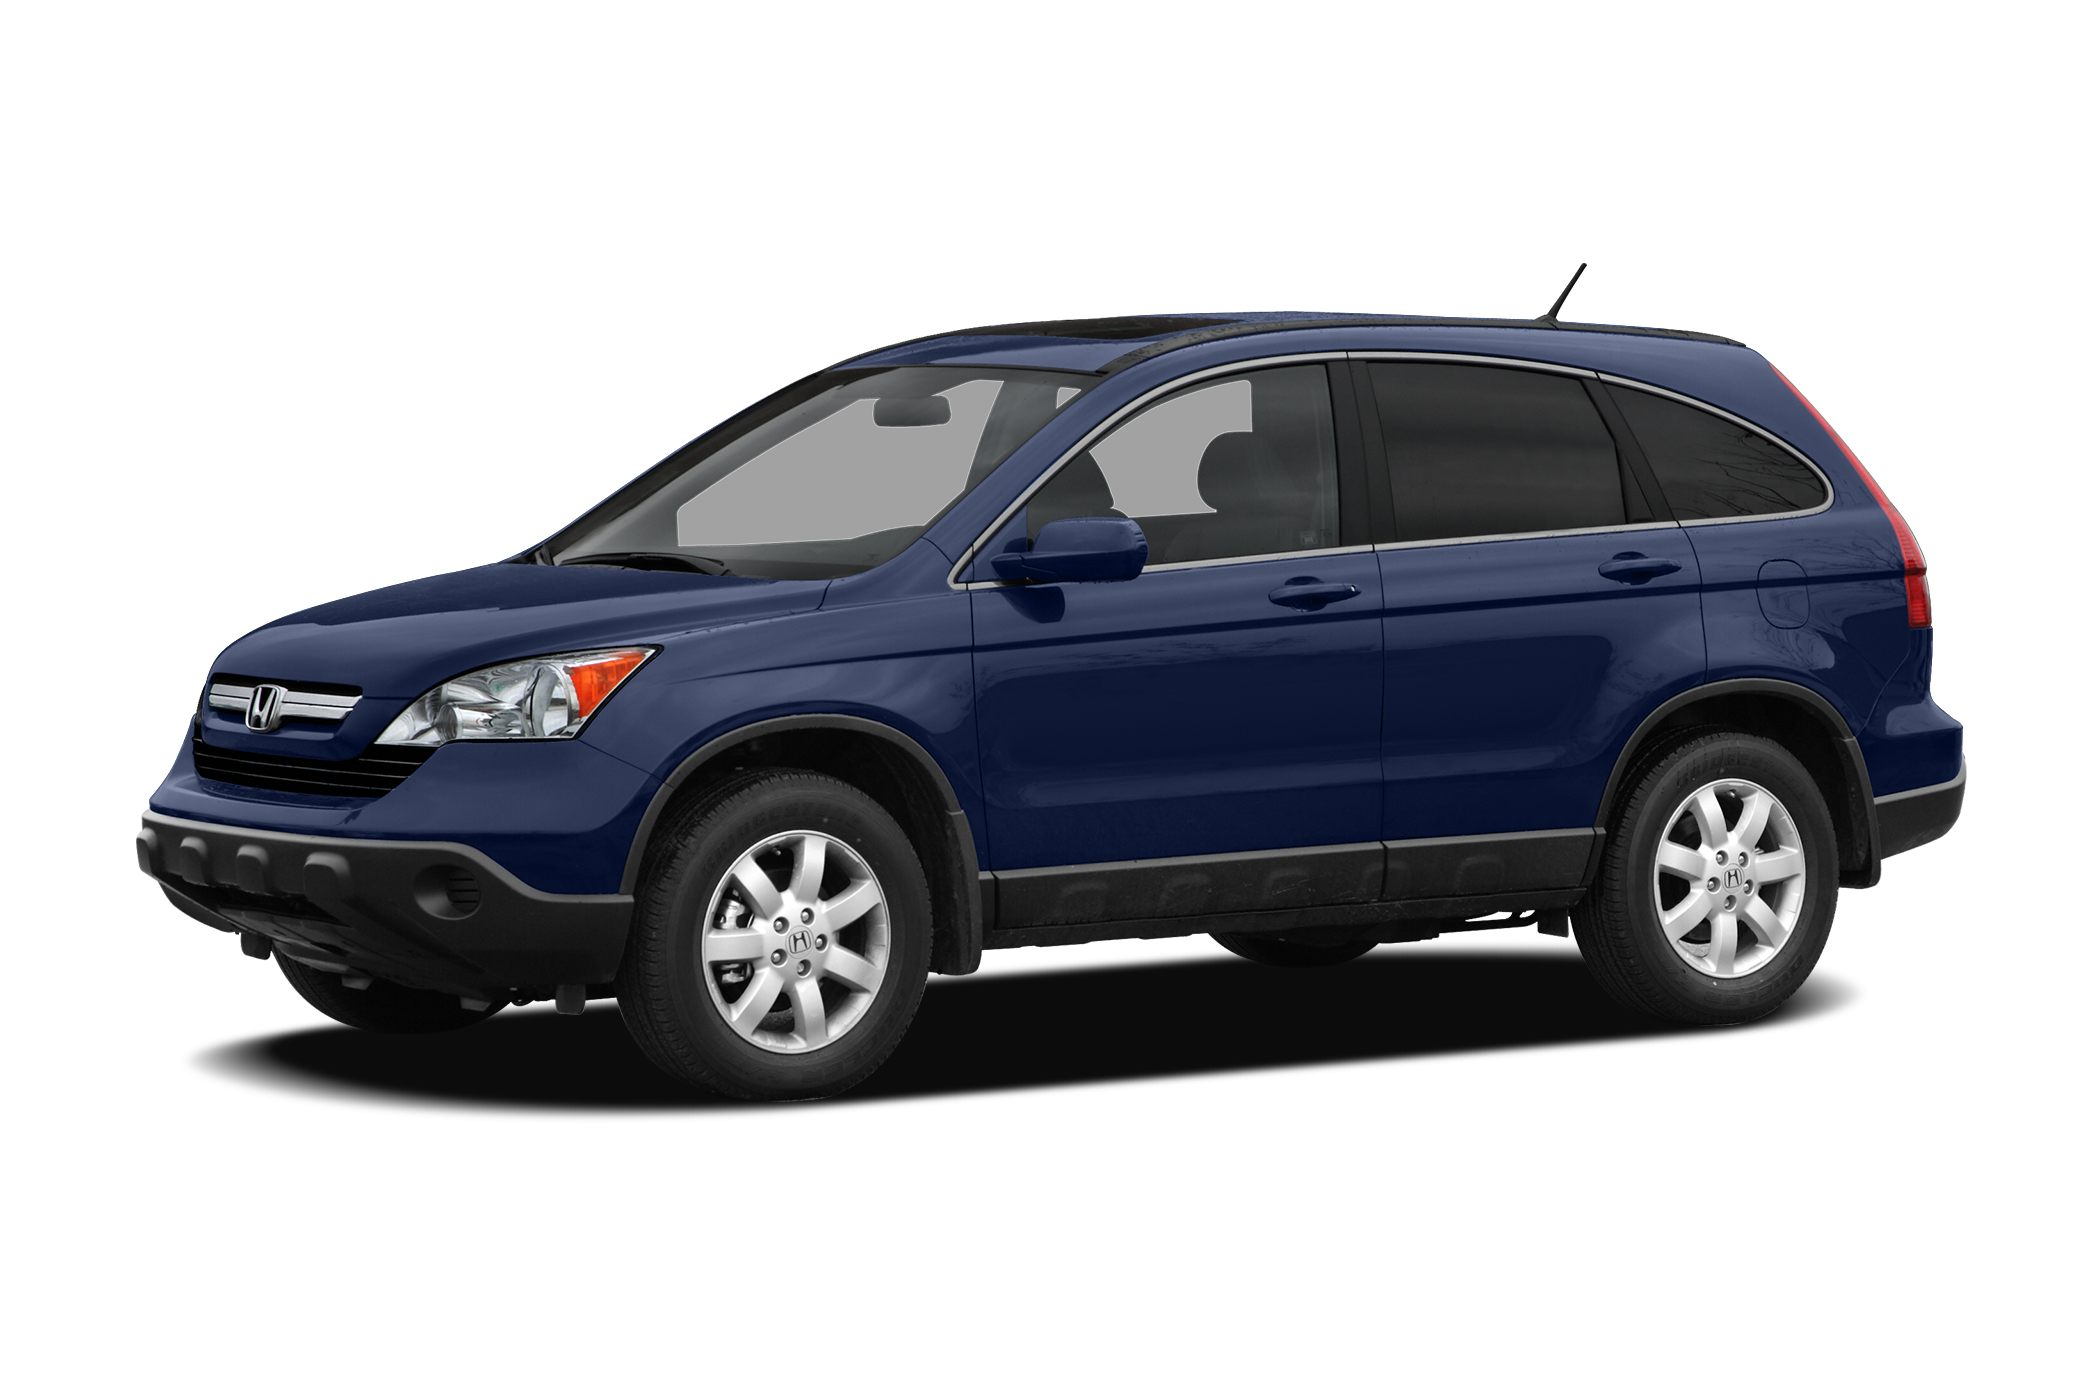 2009 Honda CR-V EX-L SUV for sale in Chattanooga for $15,281 with 98,662 miles.